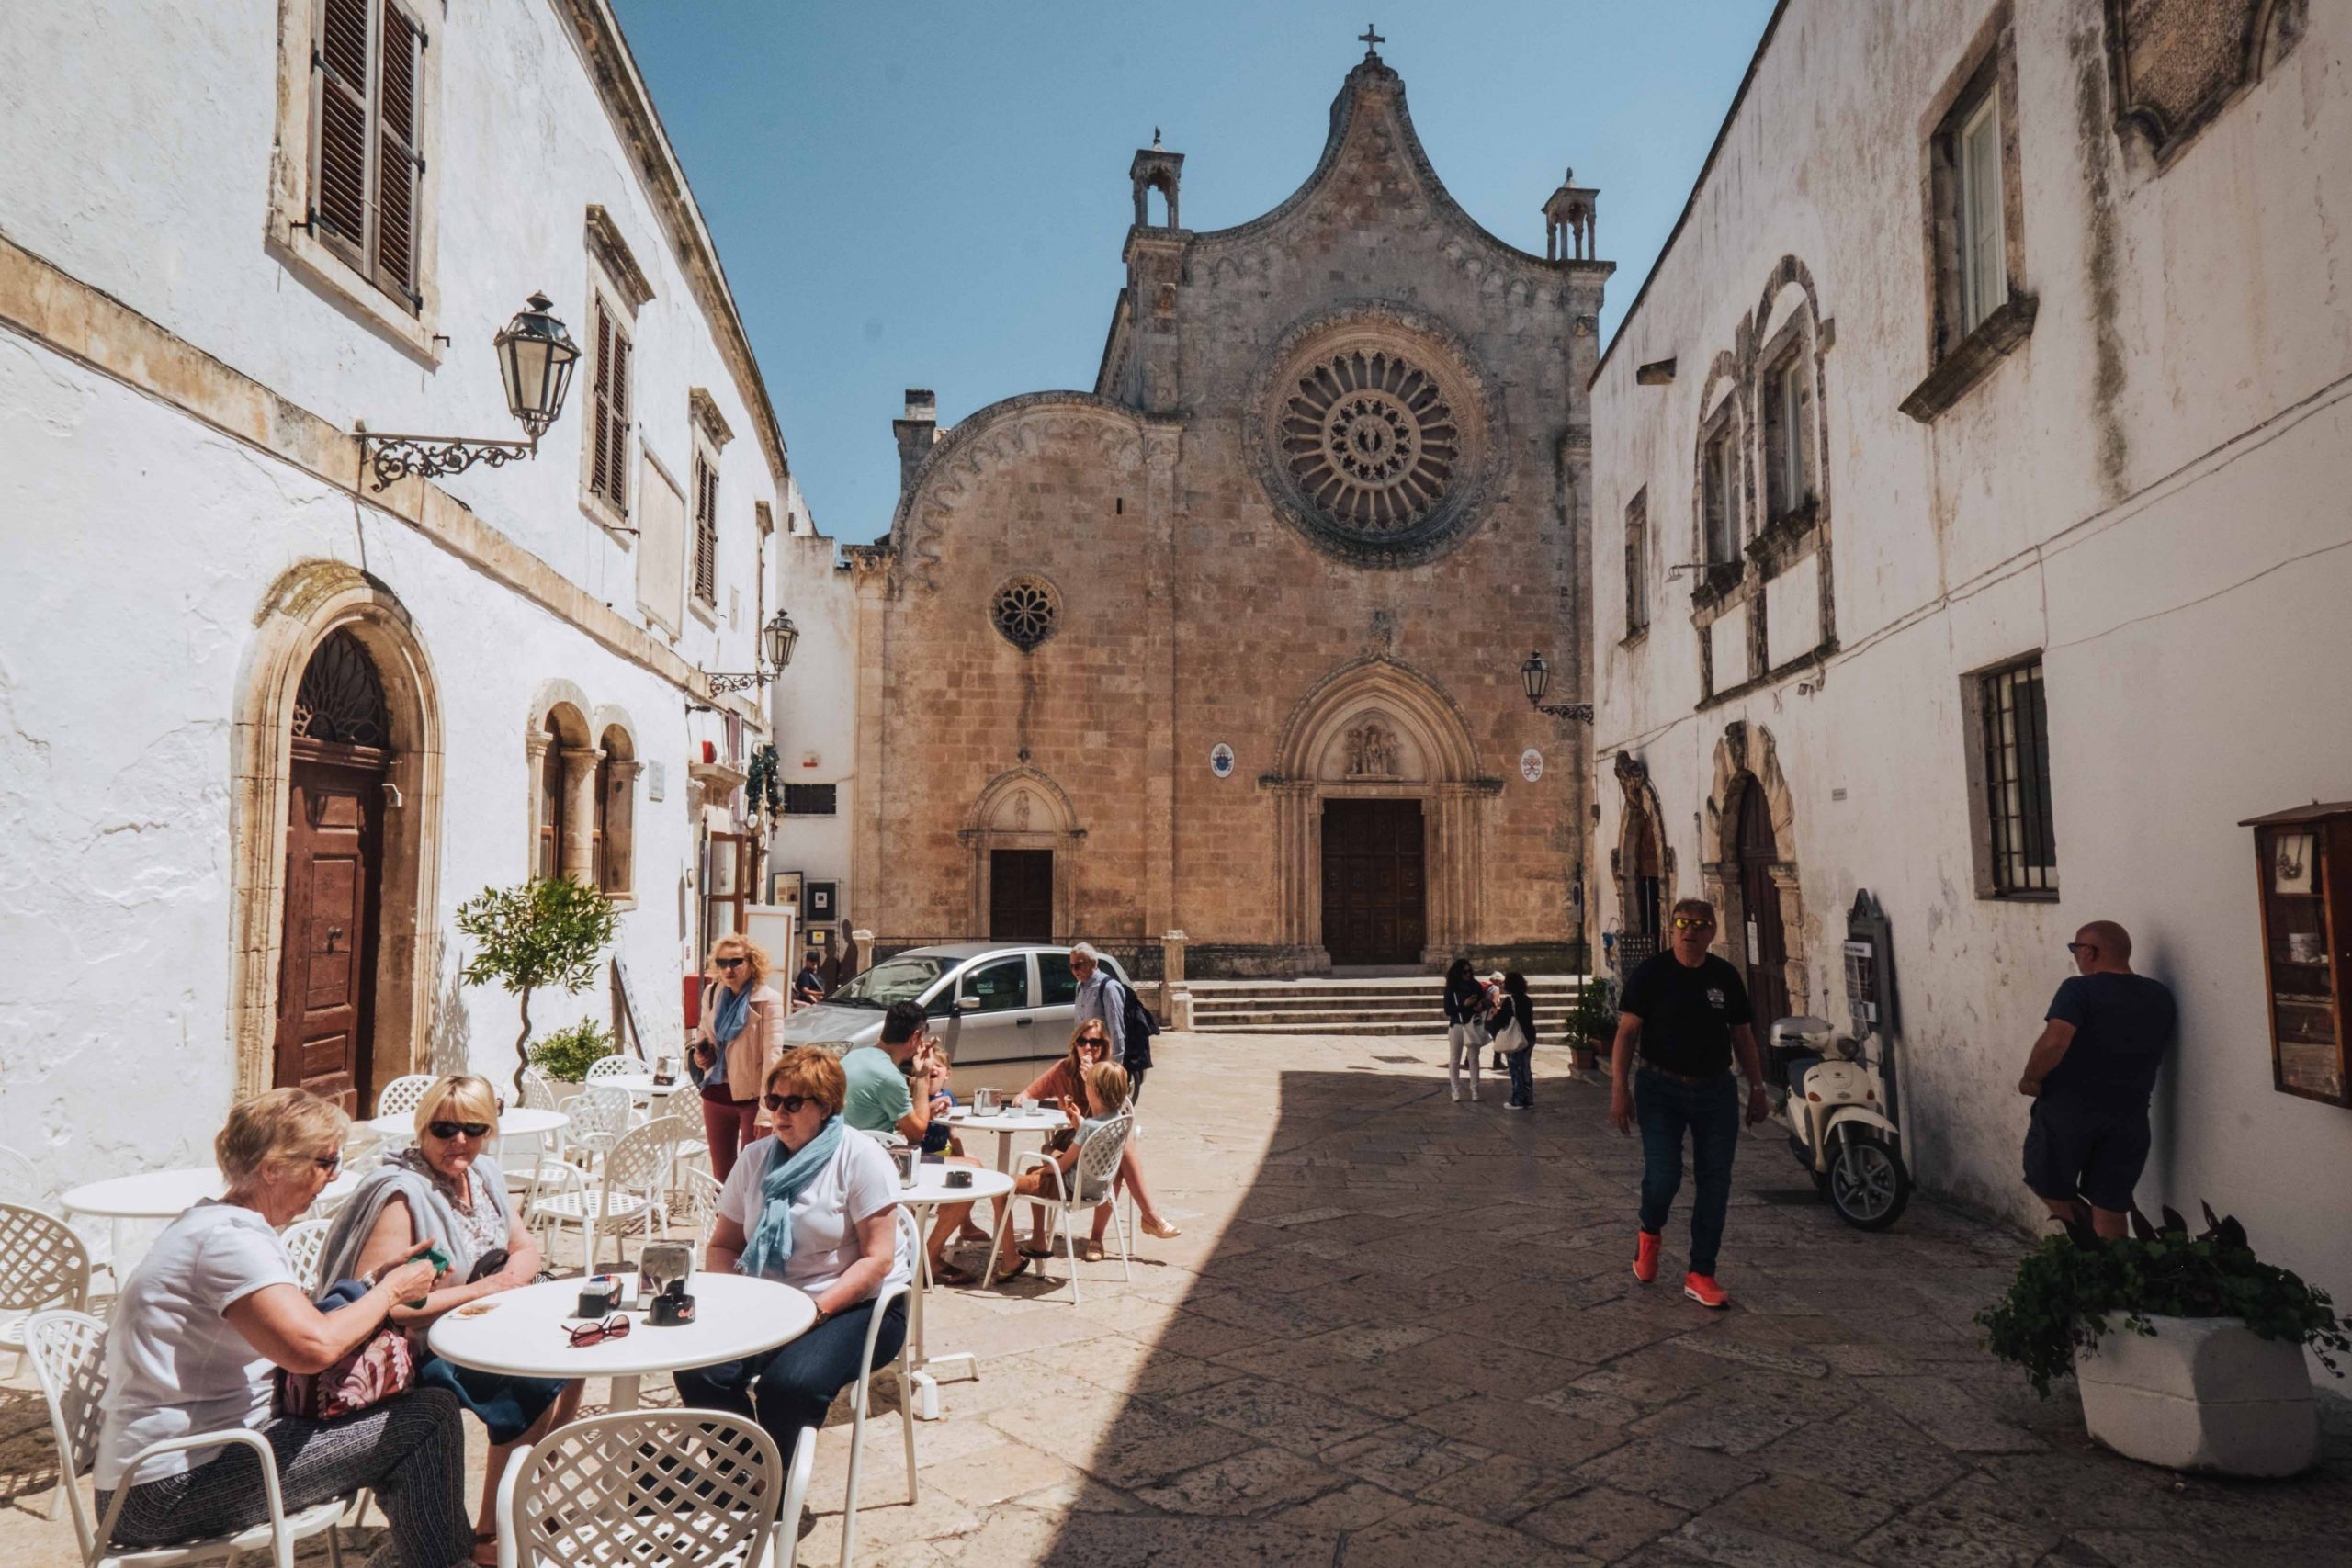 Ostuni, dubbed the Città Bianca (White City) is a UNESCO World Heritage Site | A 7-day Road Trip Through Puglia | Mondomulia